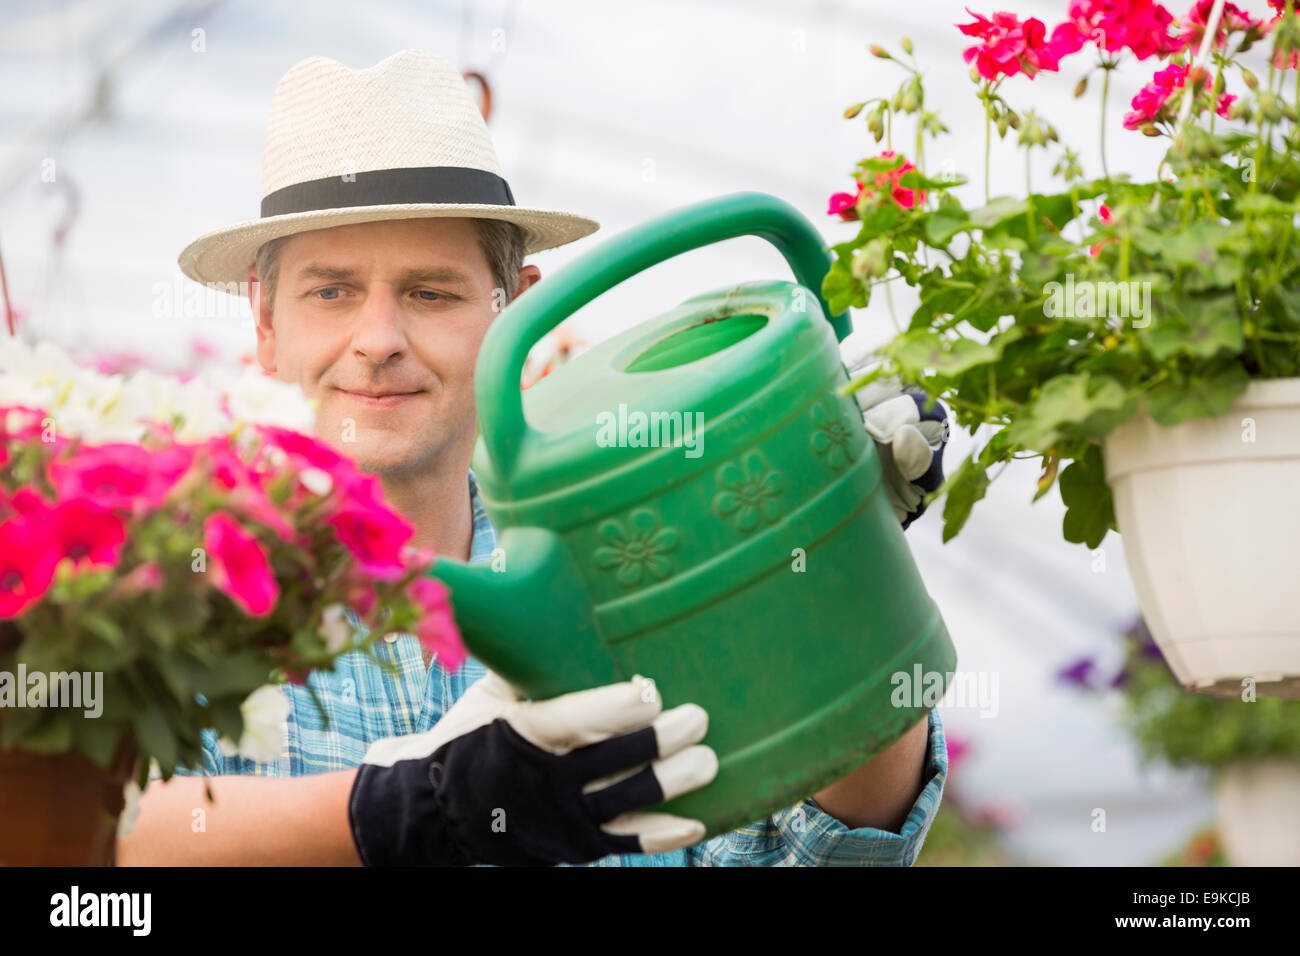 Middle-aged man watering flower plants in greenhouse - Stock Image